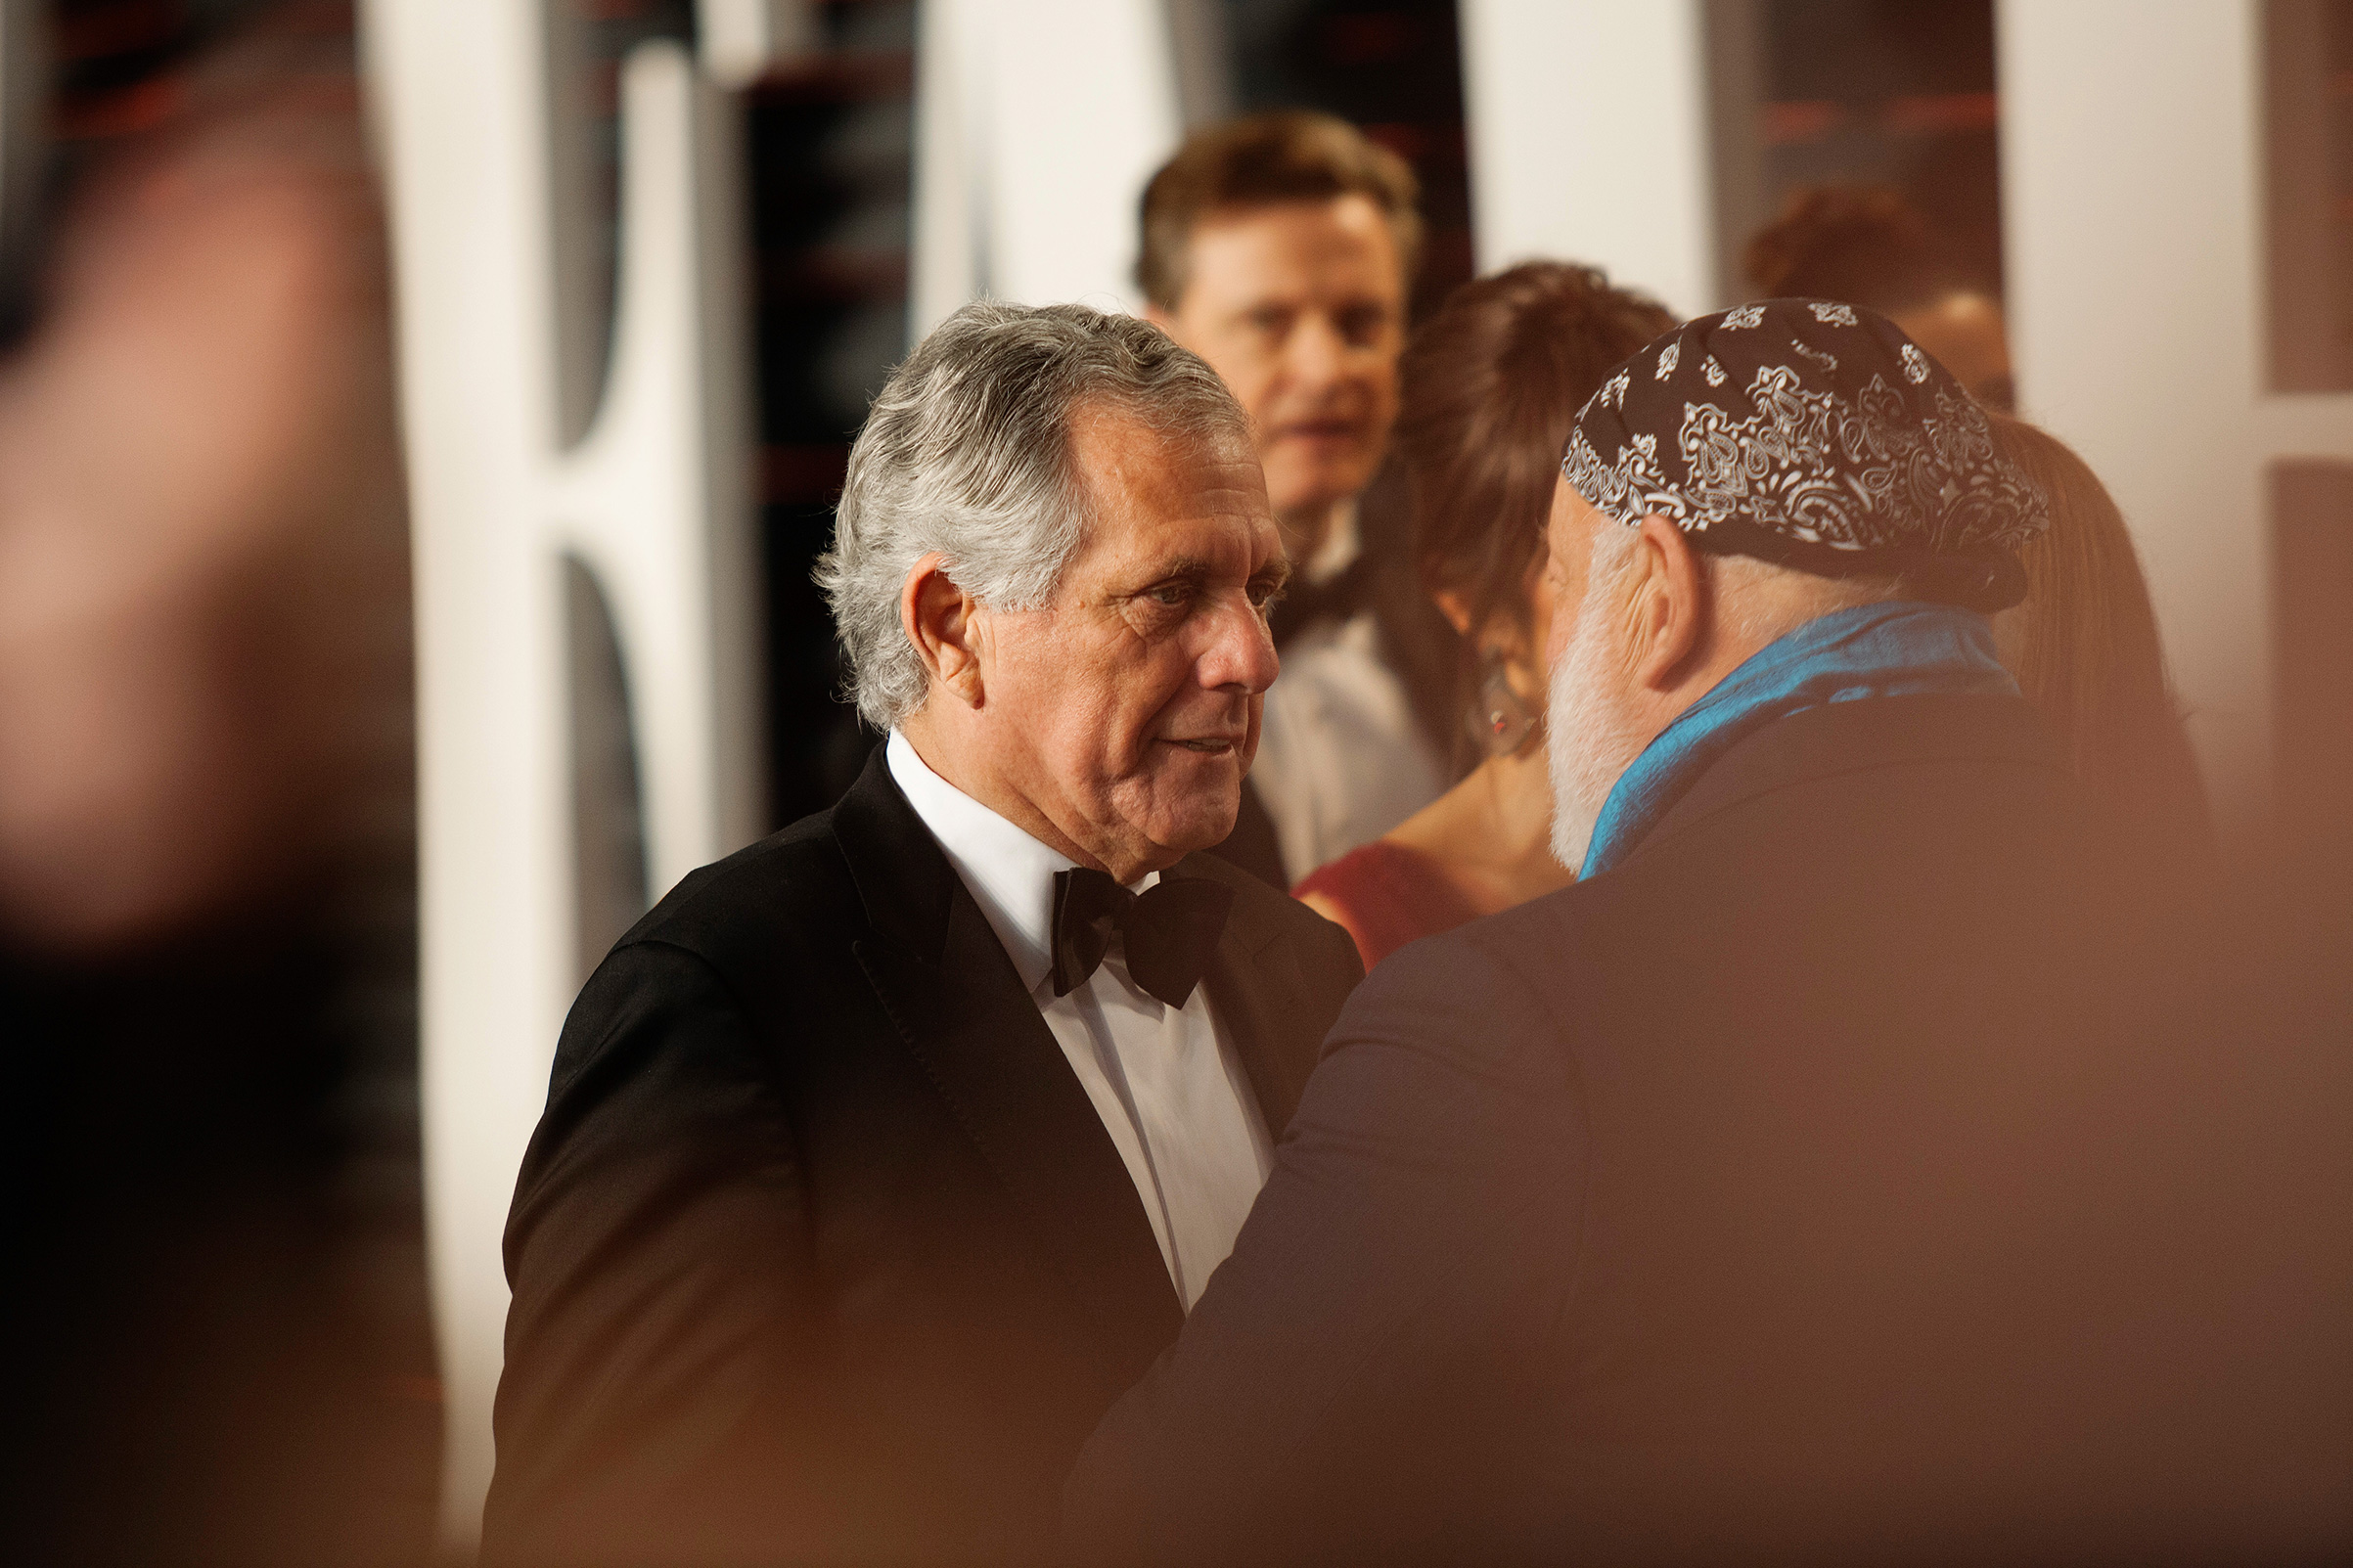 Les Moonves, the former chief executive of CBS, at the Vanity Fair Oscars party, in Beverly Hills, Calif., Feb. 28, 2016.